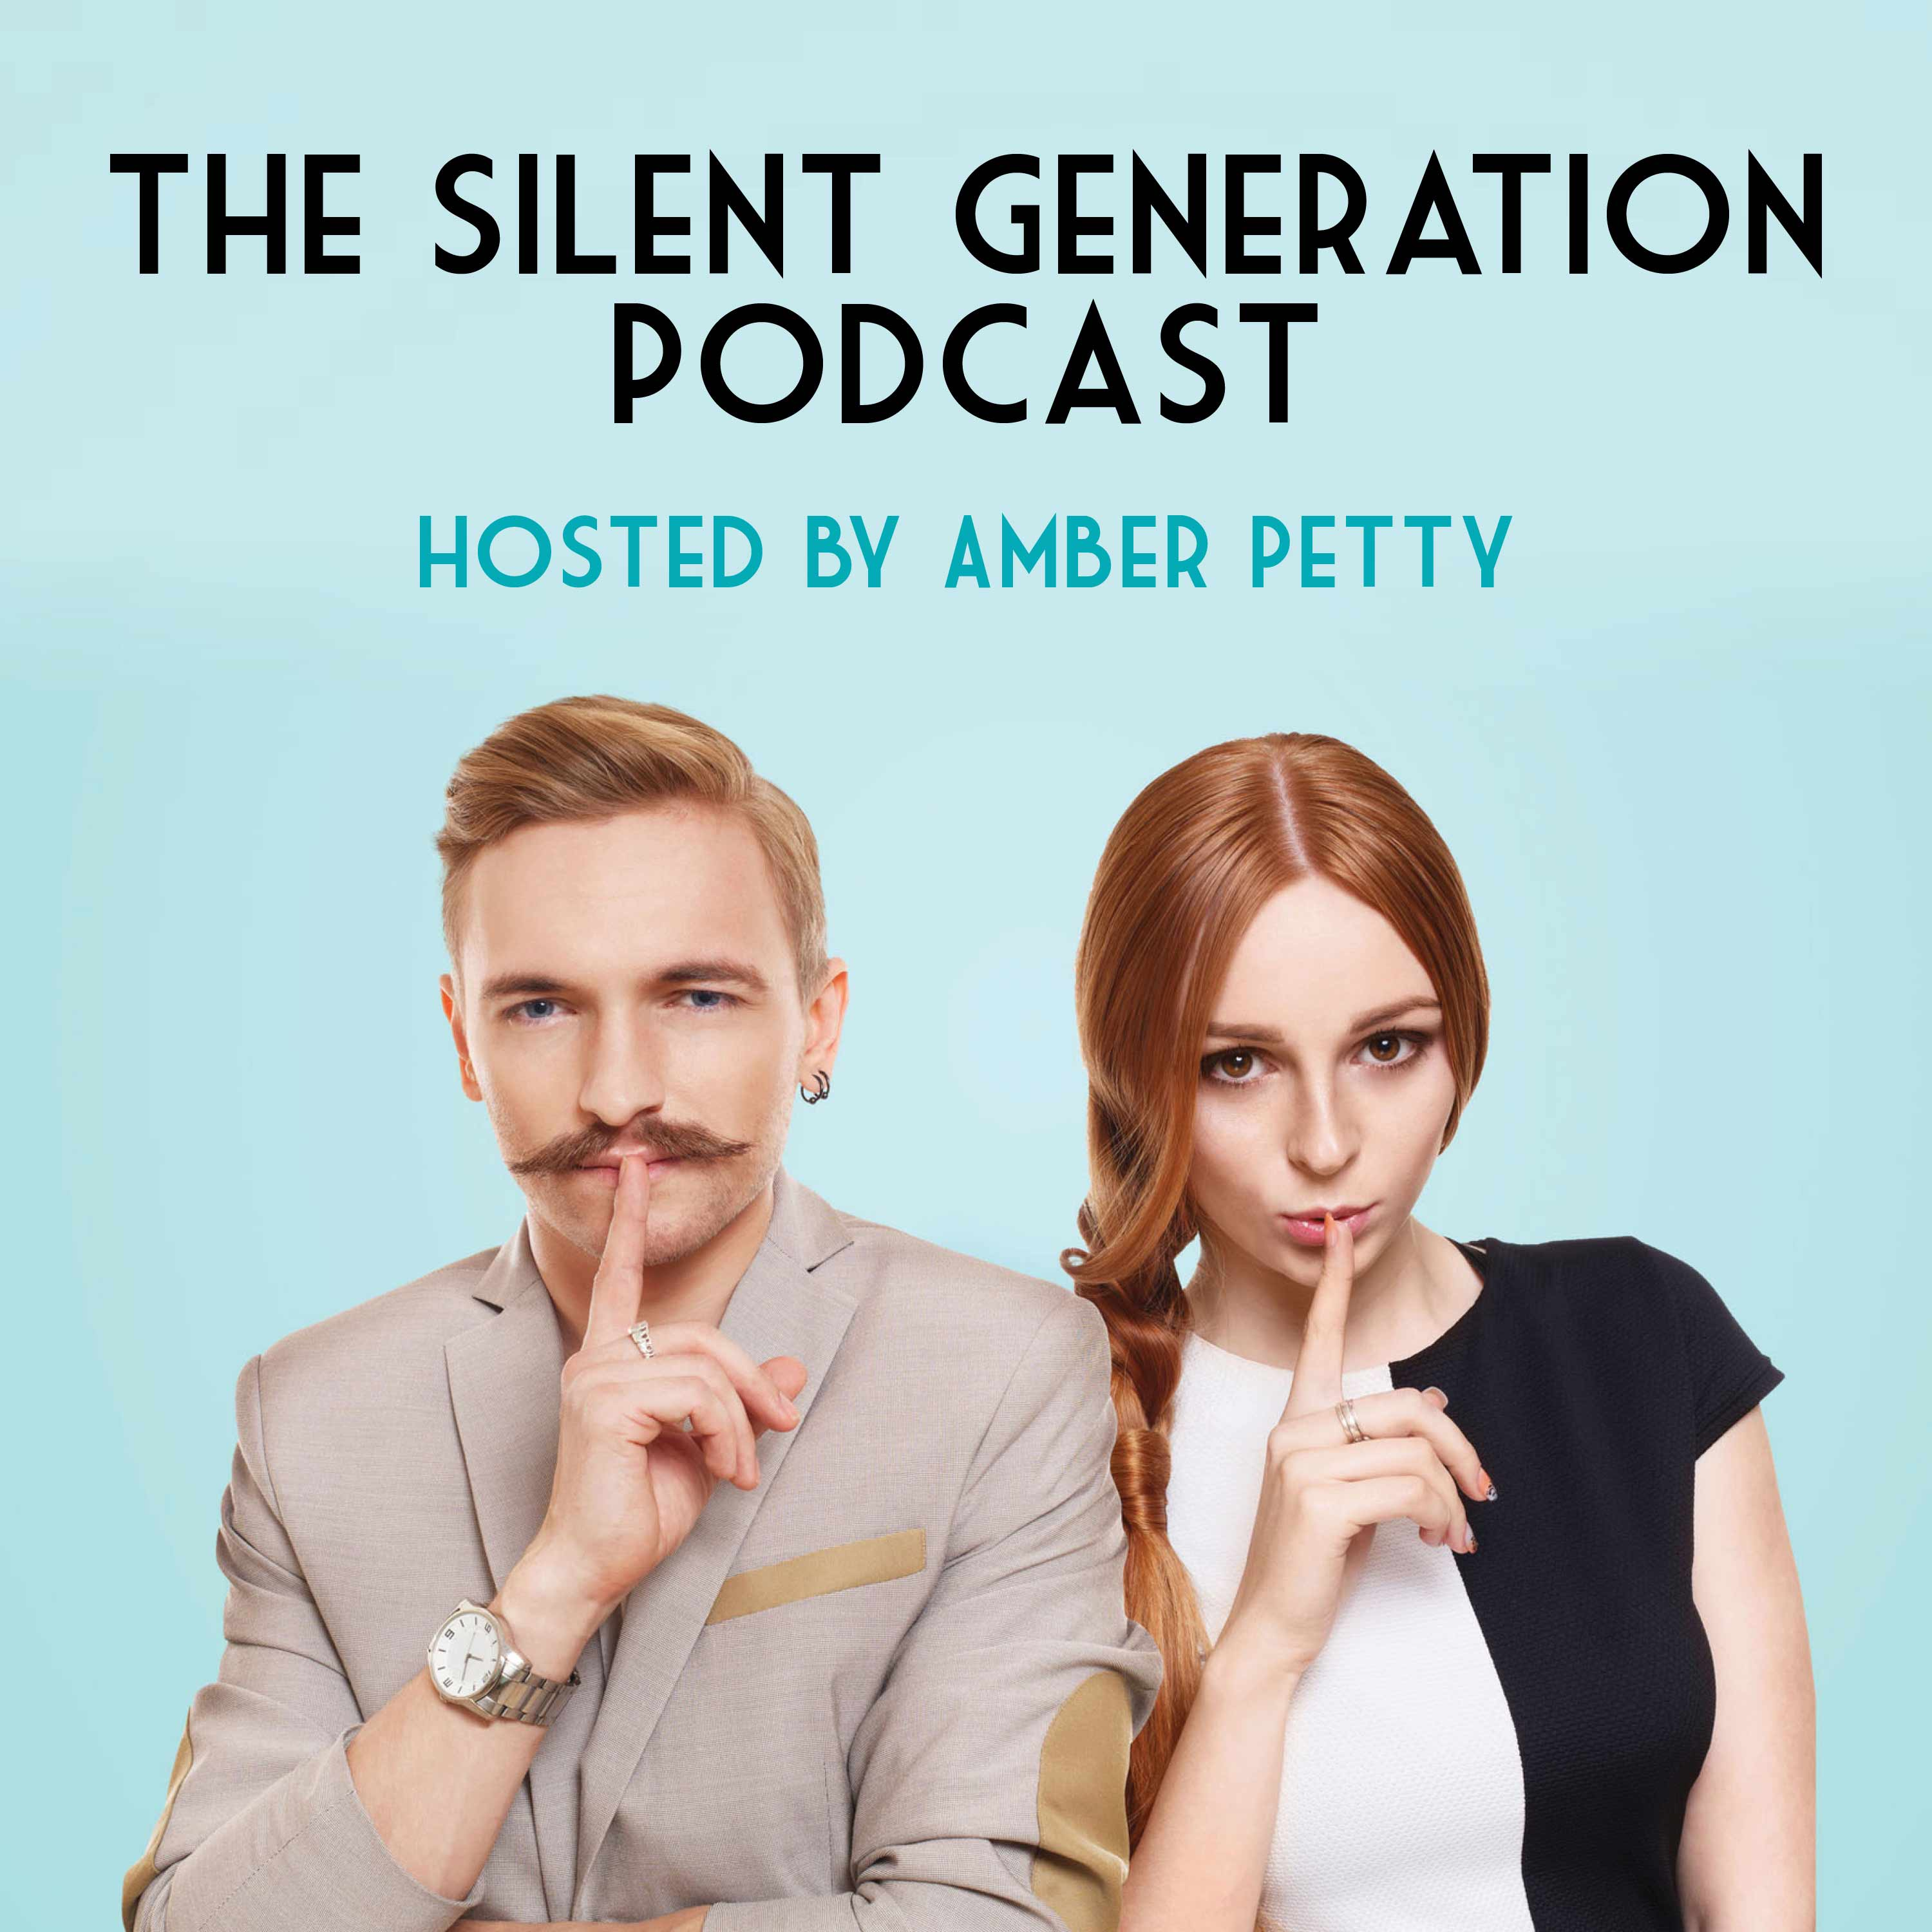 The SILENT GENERATION by Amber Petty